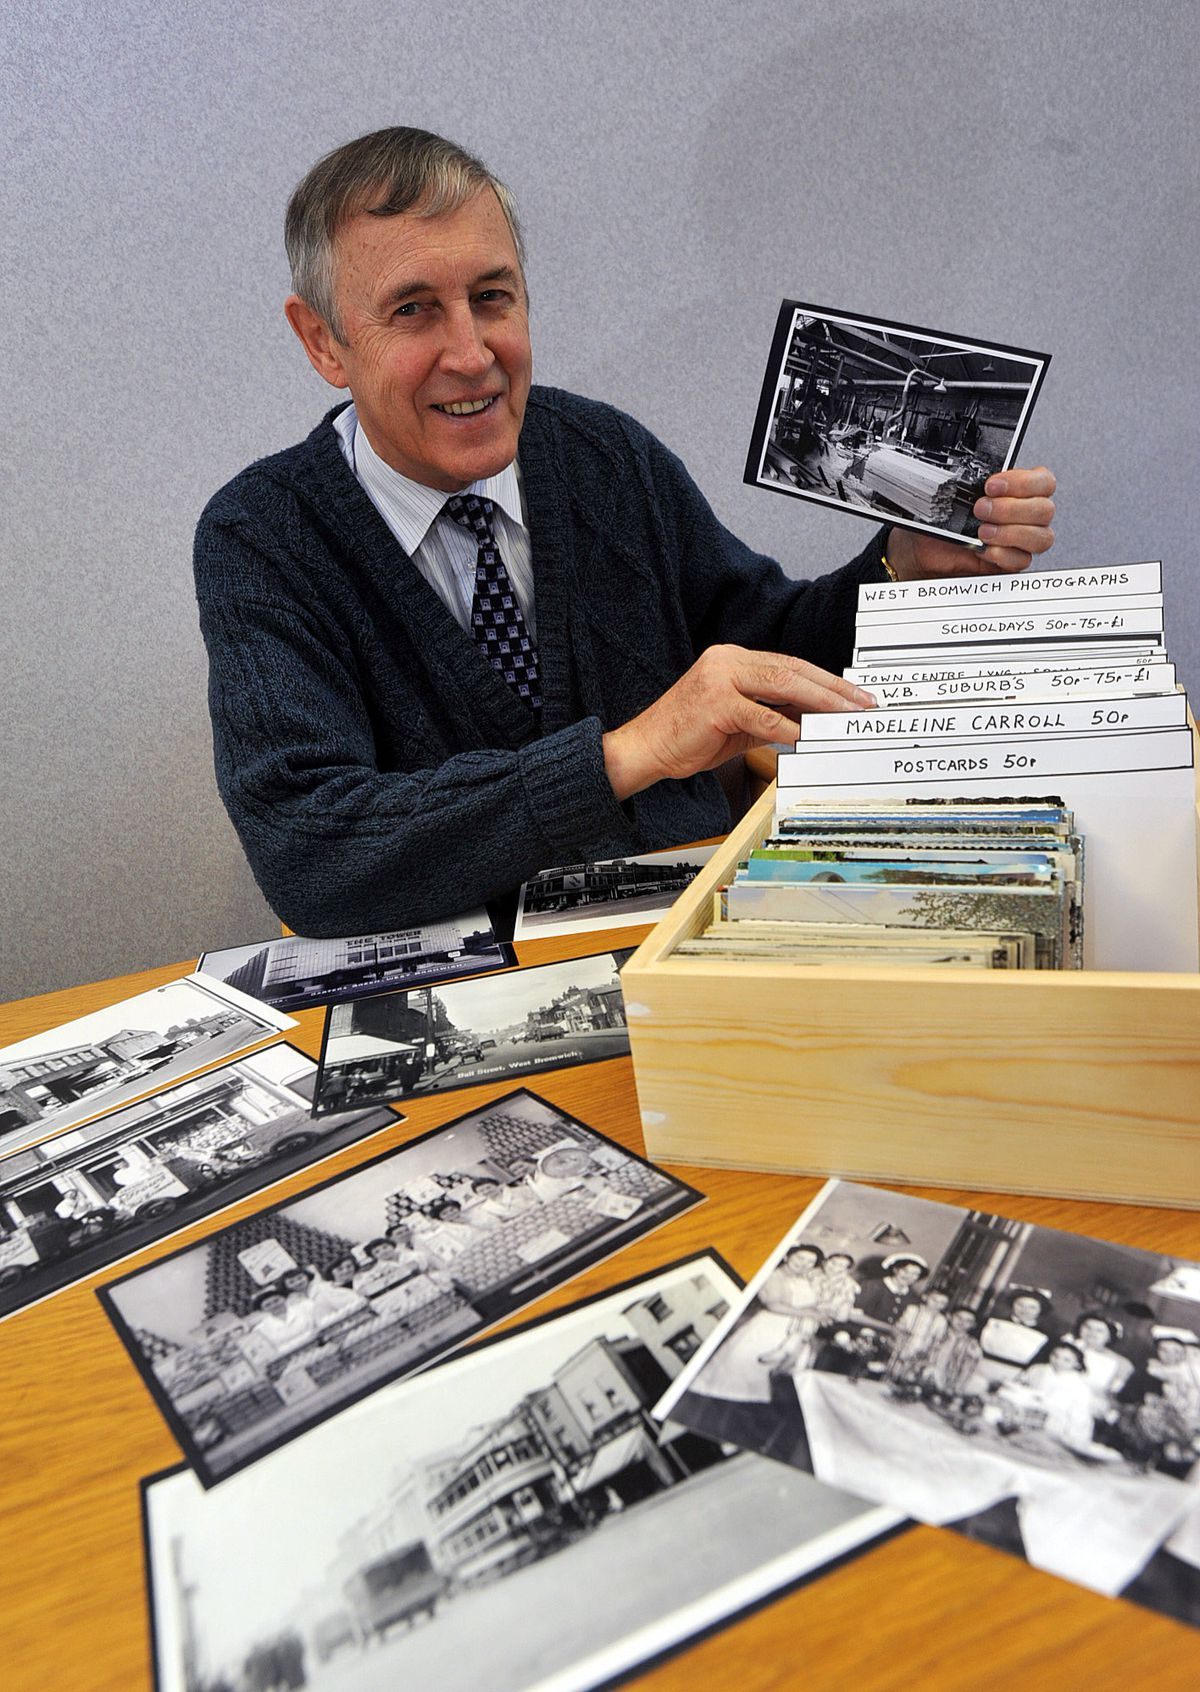 Terry Price with some of his old photographs